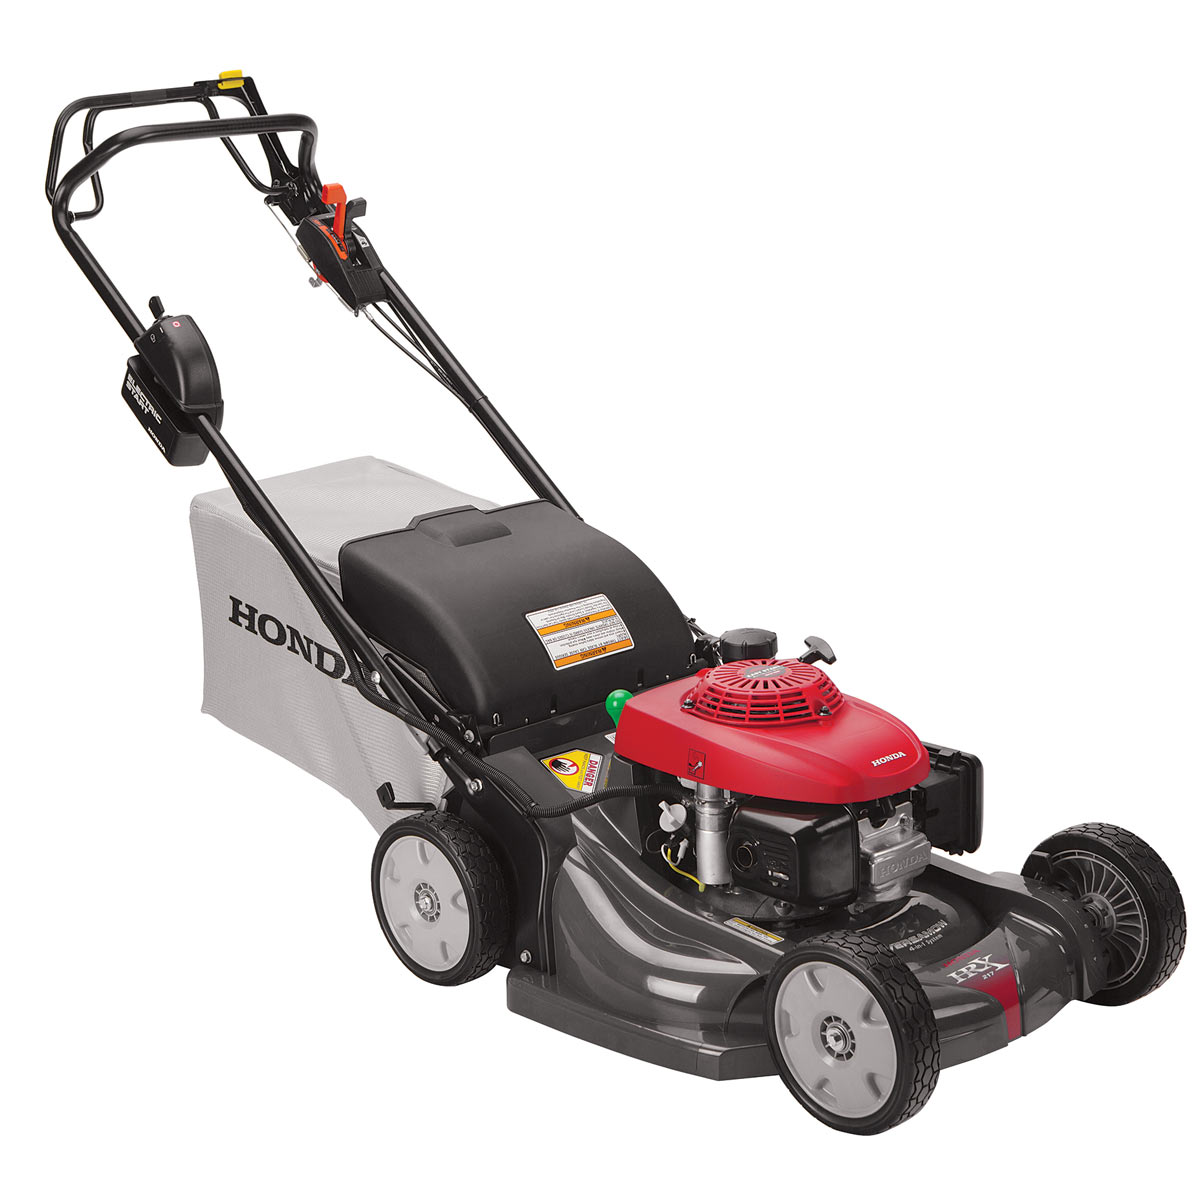 Honda Markets Its Mowers As Being Very Smart And S The Hrx Lineup One Of Higher End Walk Behind Models Available To Consumers